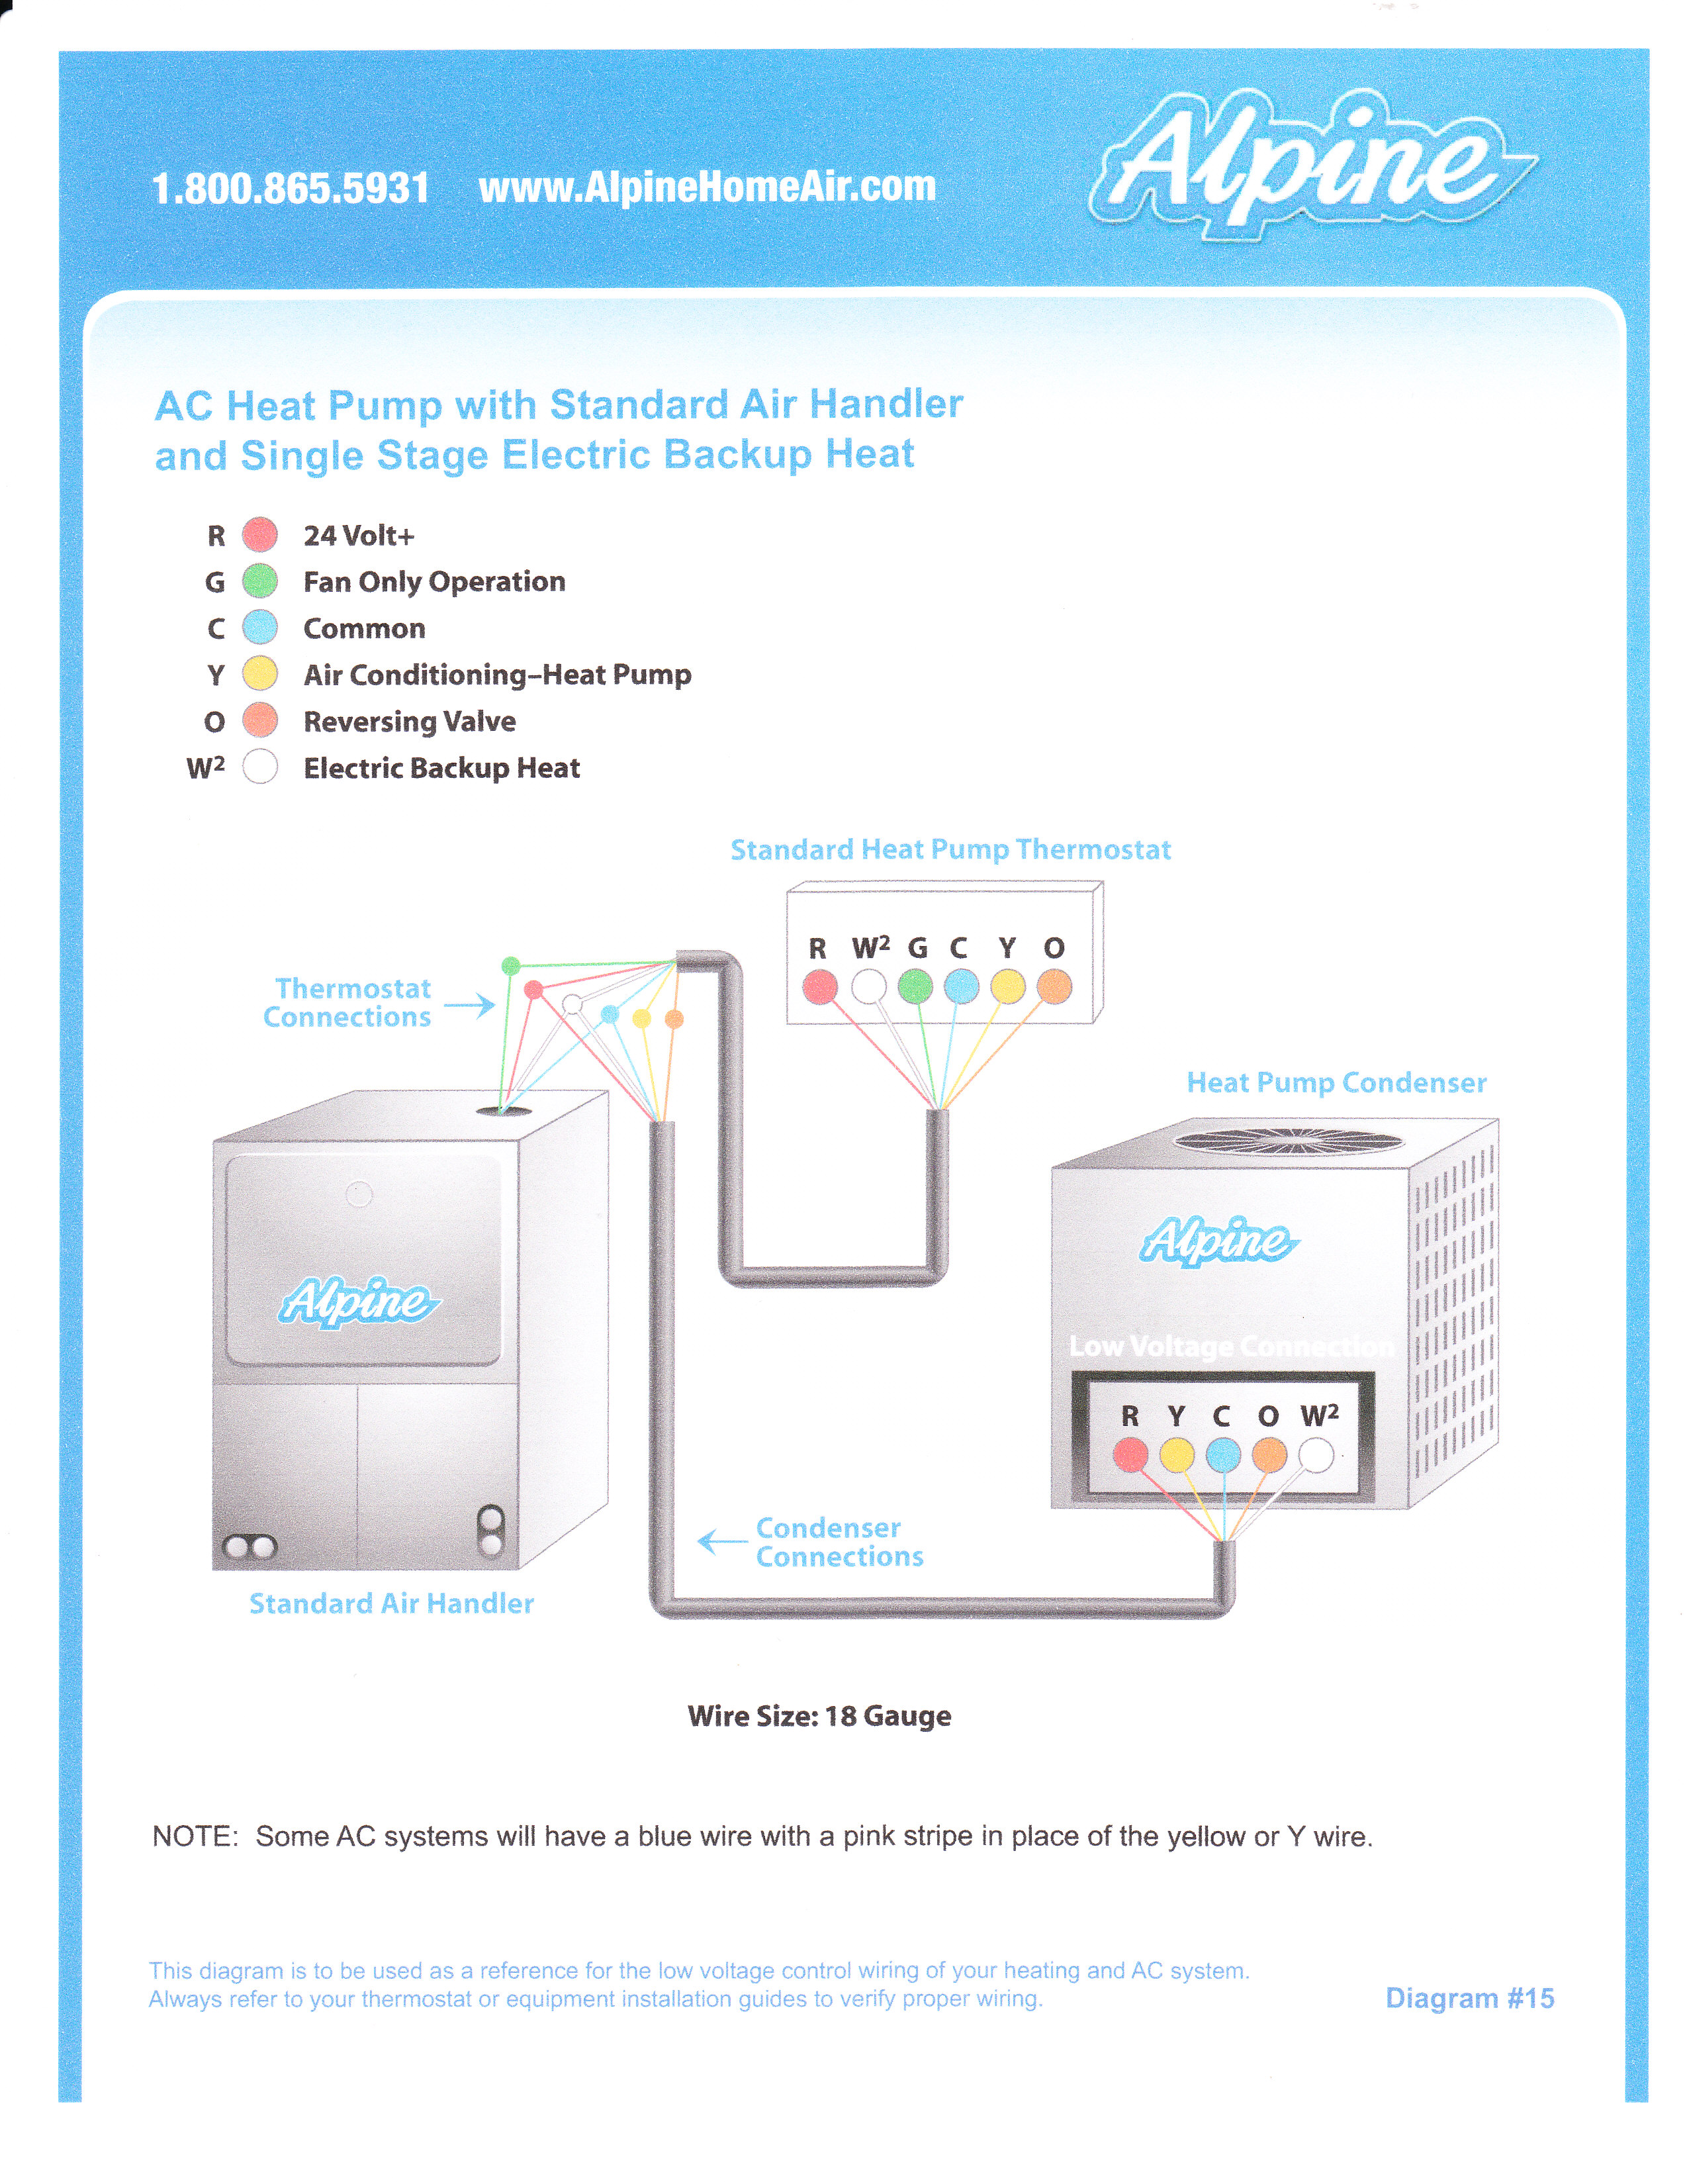 Thermal Zone Heat Pump Wiring Diagram from static-cdn.imageservice.cloud